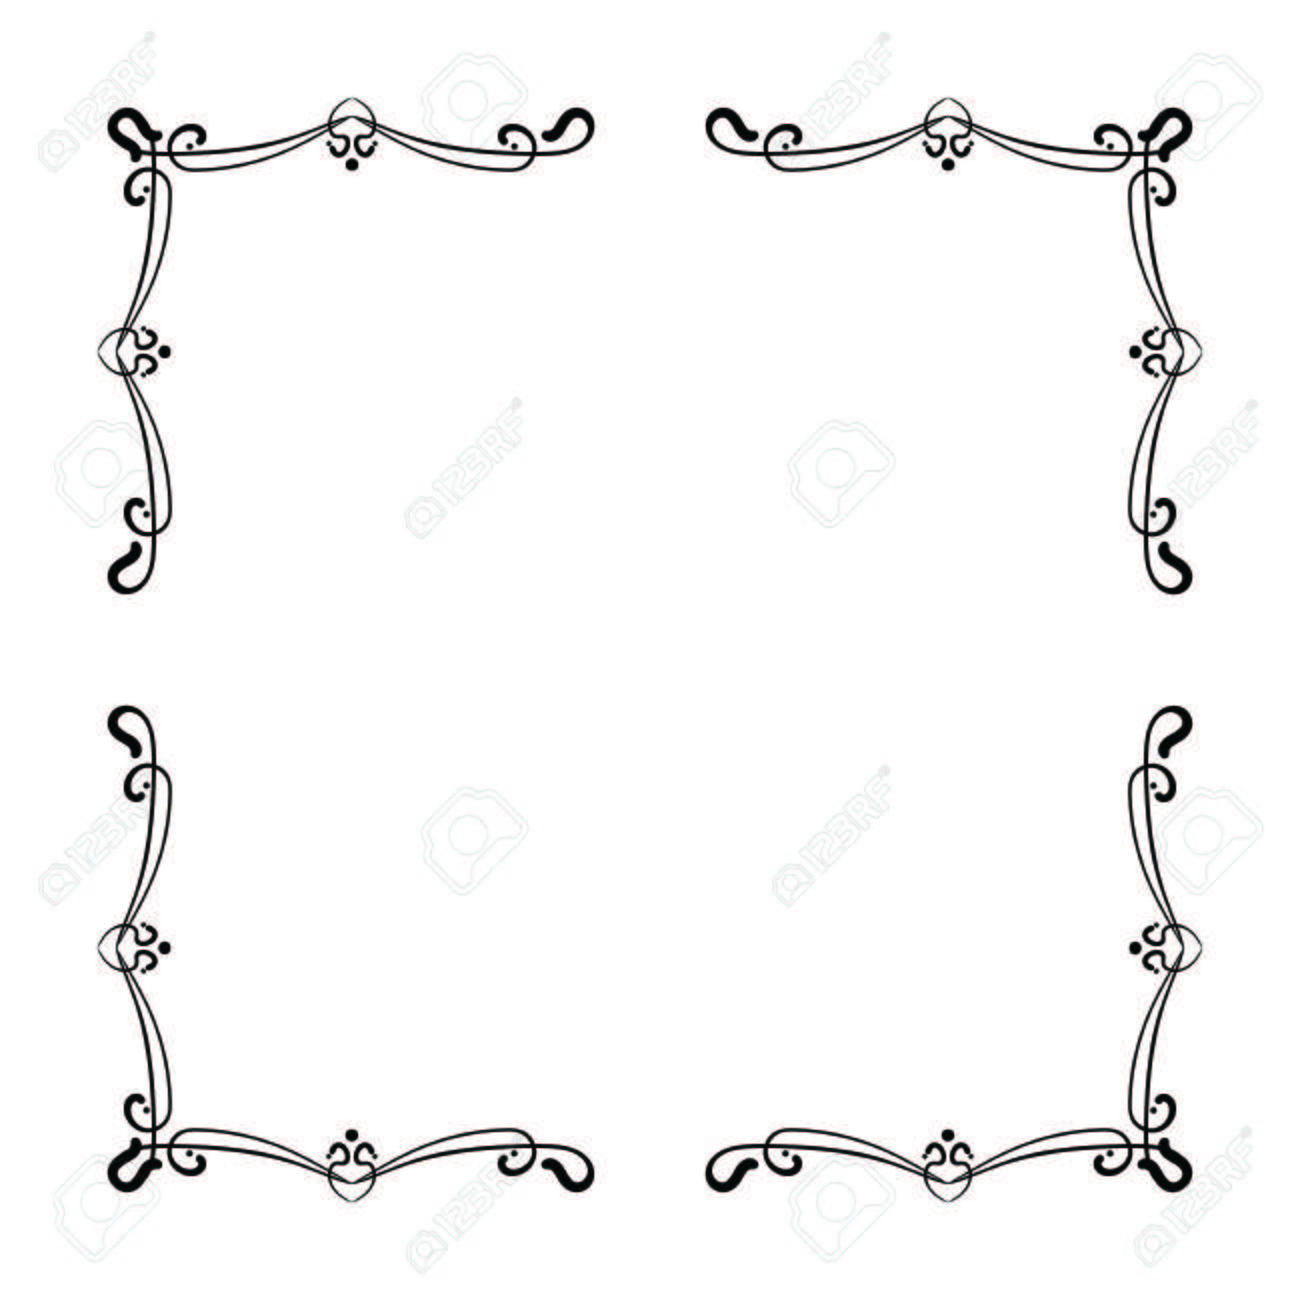 Simple frame design Background Simple And Elegant Square Frame Design Template For Labels And Logos Vector Illustration Stock 123rfcom Simple And Elegant Square Frame Design Template For Labels And